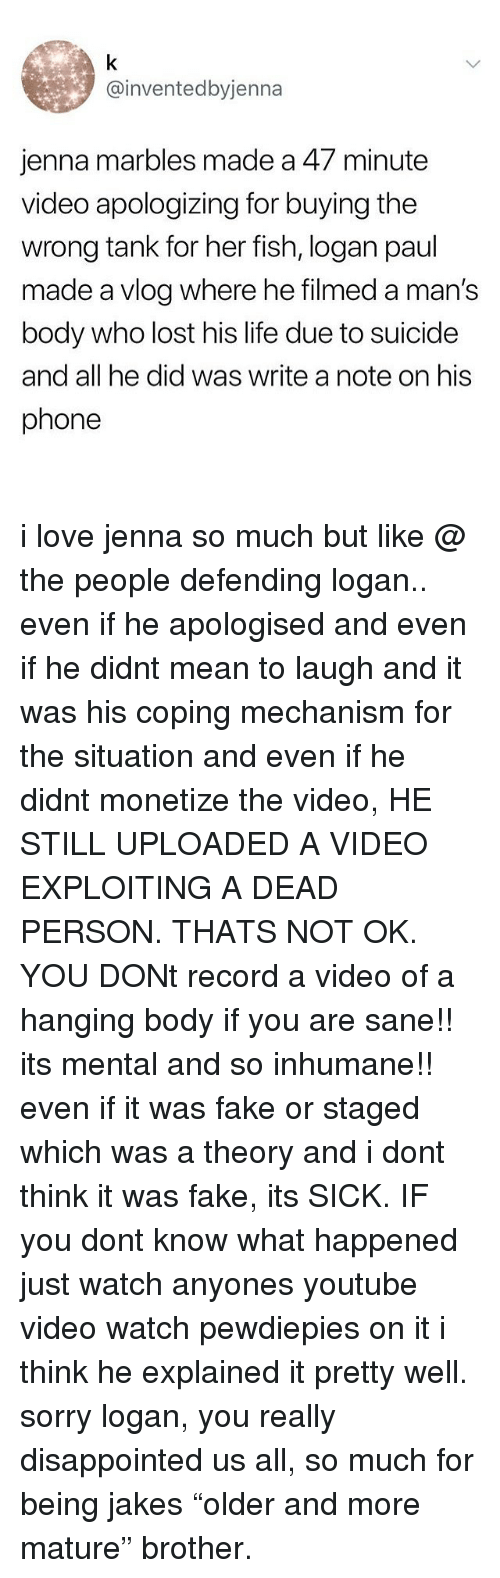 """Disappointed, Fake, and Life: @inventedbyjenna  jenna marbles made a 47 minute  video apologizing for buying the  wrong tank for her fish, logan paul  made a vlog where he filmed a man's  body who lost his life due to suicide  and all he did was write a note on his  phone i love jenna so much but like @ the people defending logan.. even if he apologised and even if he didnt mean to laugh and it was his coping mechanism for the situation and even if he didnt monetize the video, HE STILL UPLOADED A VIDEO EXPLOITING A DEAD PERSON. THATS NOT OK. YOU DONt record a video of a hanging body if you are sane!! its mental and so inhumane!! even if it was fake or staged which was a theory and i dont think it was fake, its SICK. IF you dont know what happened just watch anyones youtube video watch pewdiepies on it i think he explained it pretty well. sorry logan, you really disappointed us all, so much for being jakes """"older and more mature"""" brother."""